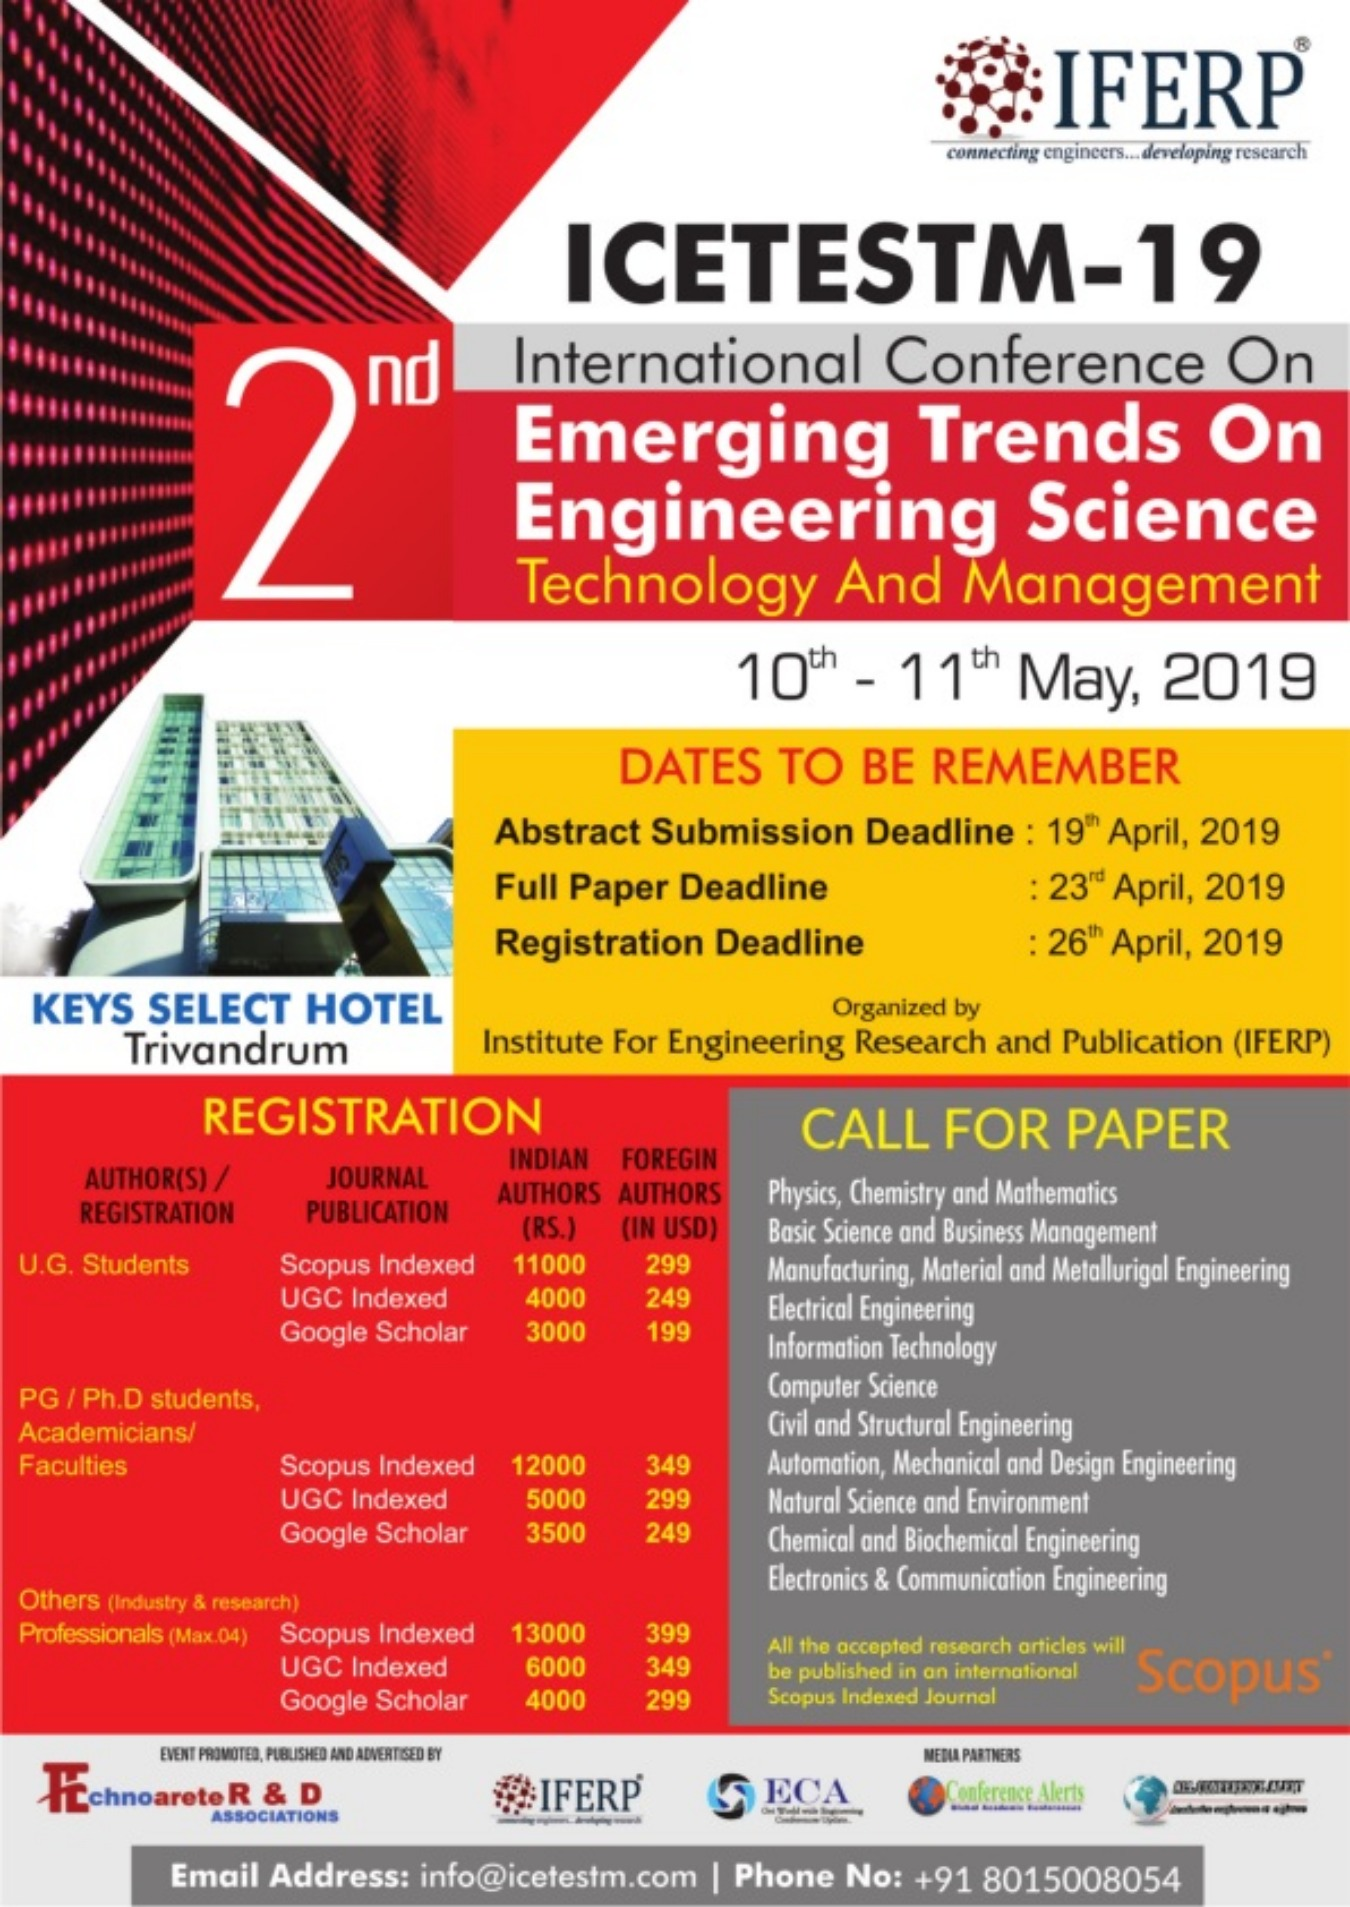 2nd International Conference On Emerging Trends On Engineering Science,  Technology And Management Tickets by ICETESTM Conference, 10 May, 2019,  Peyad